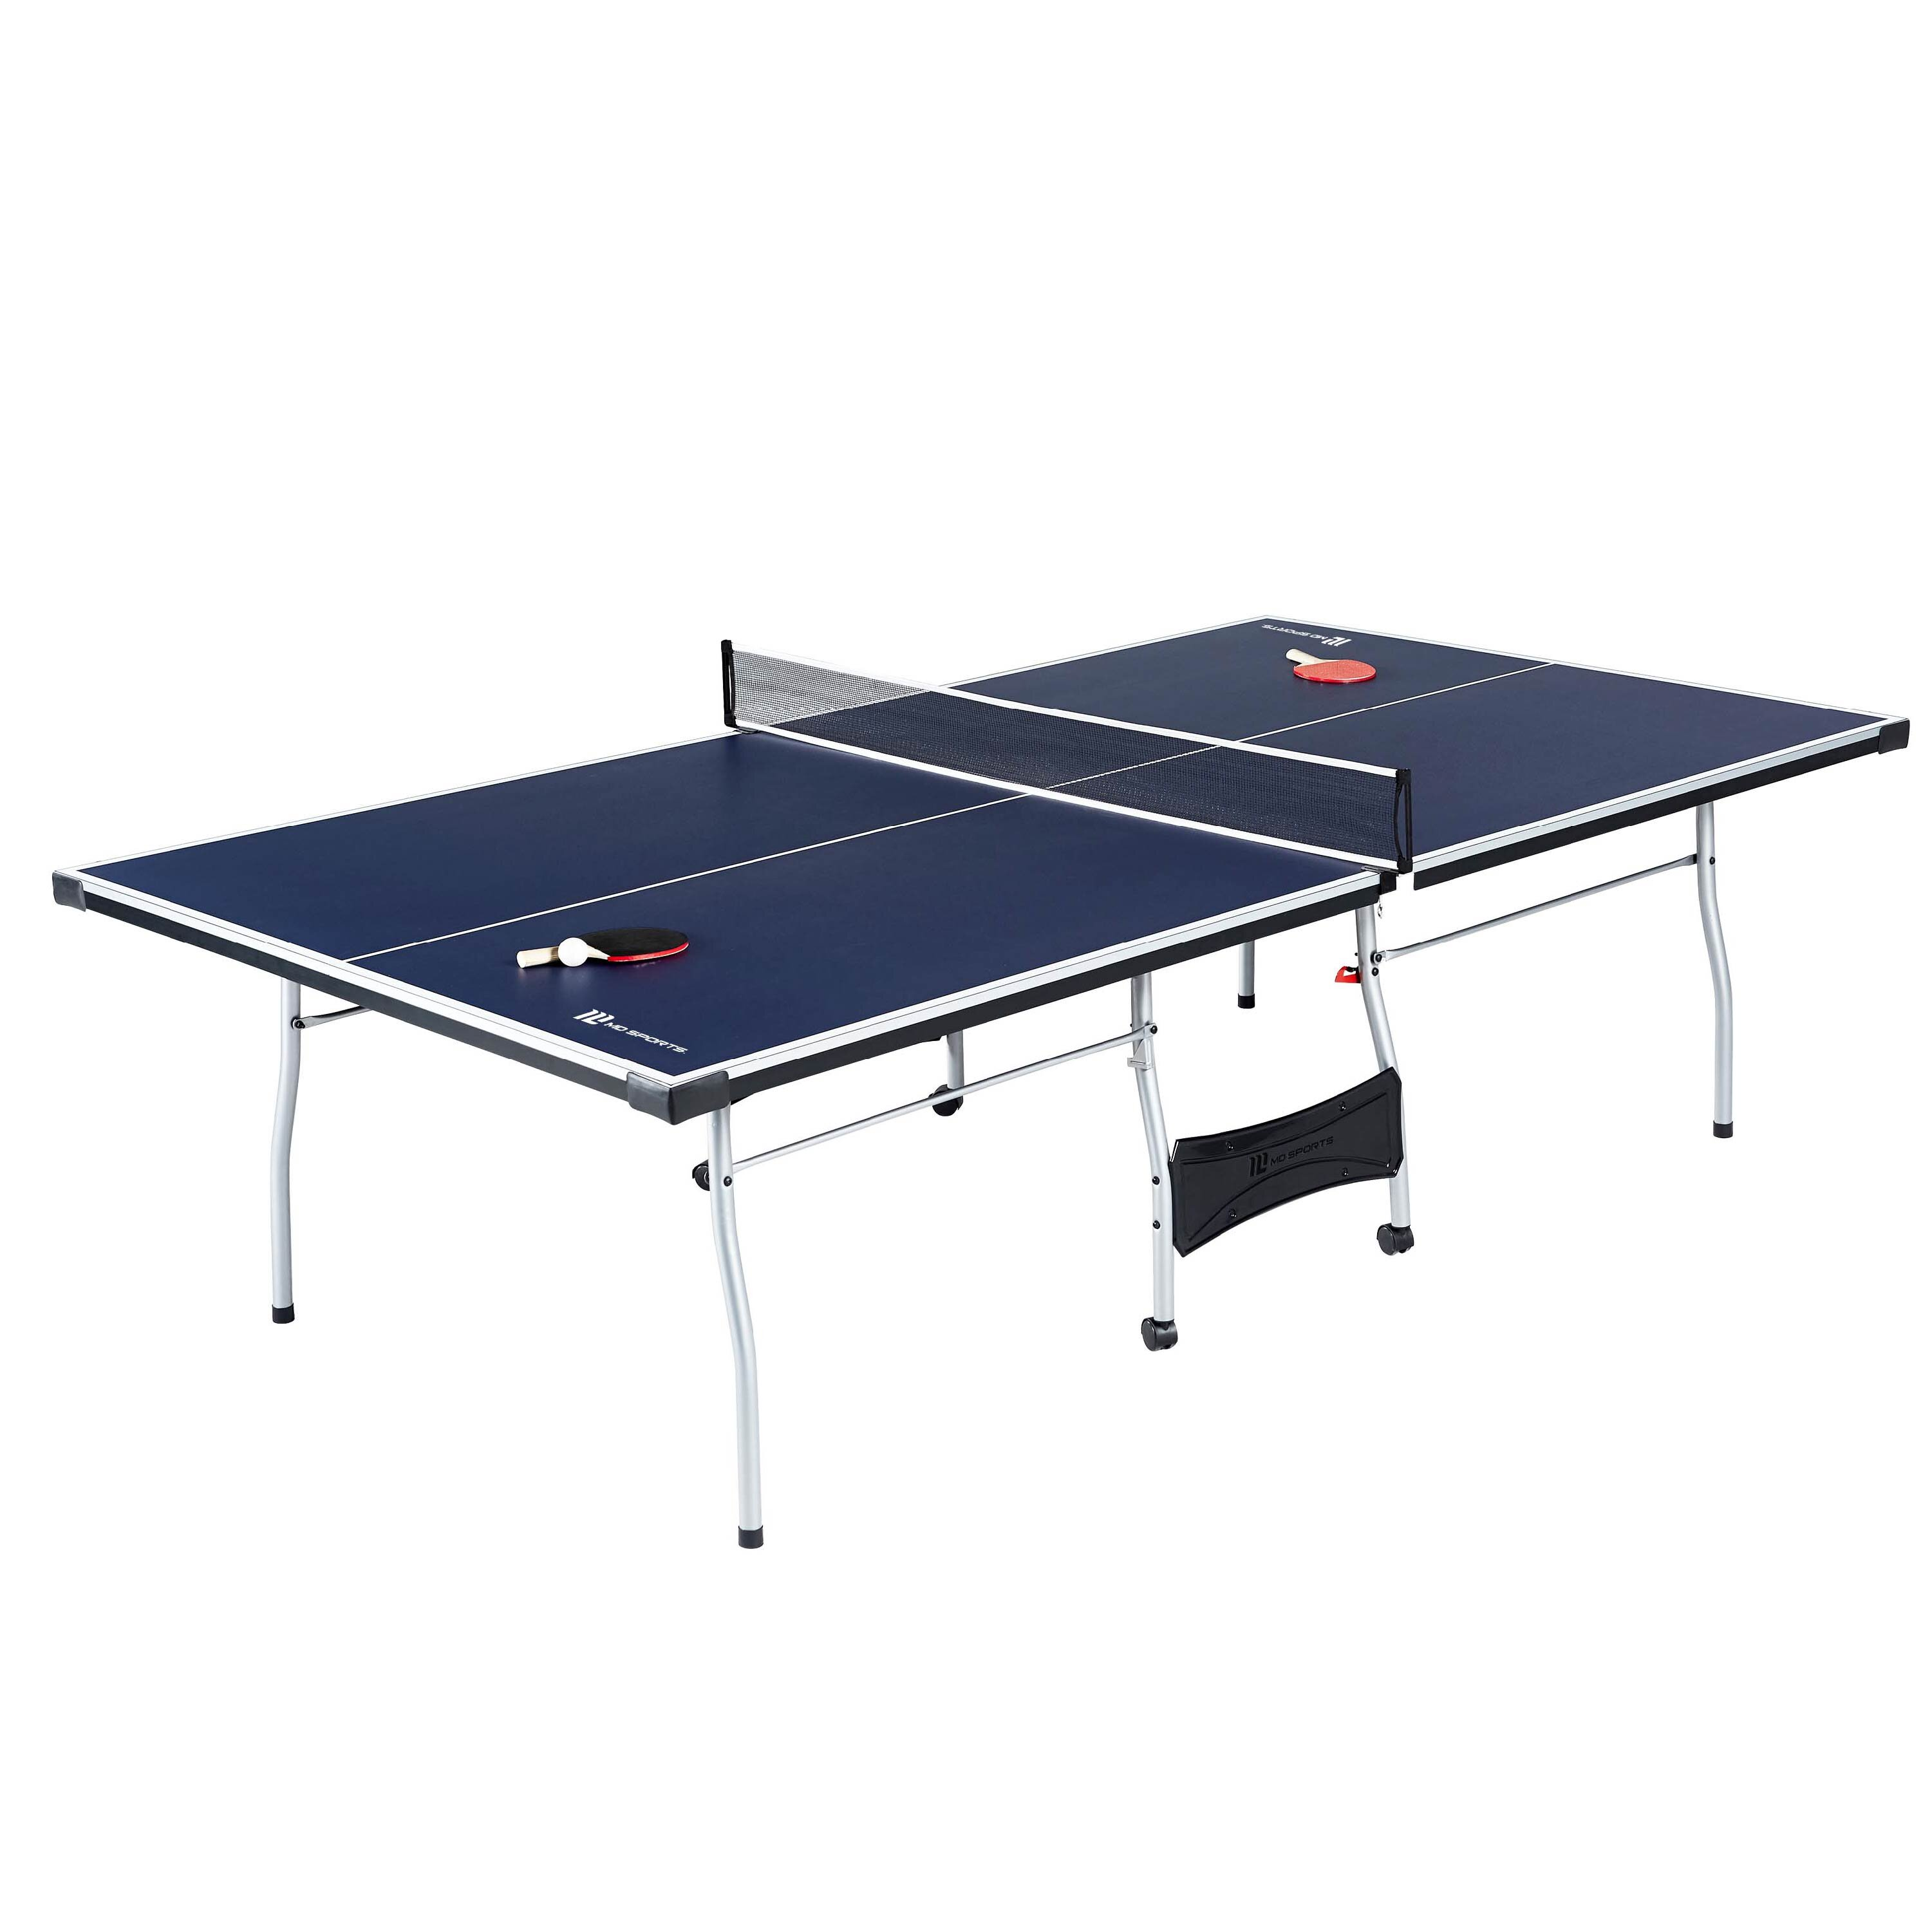 Md Sports Official Regulation Size Foldable Indoor Table Tennis Table Reviews Wayfair